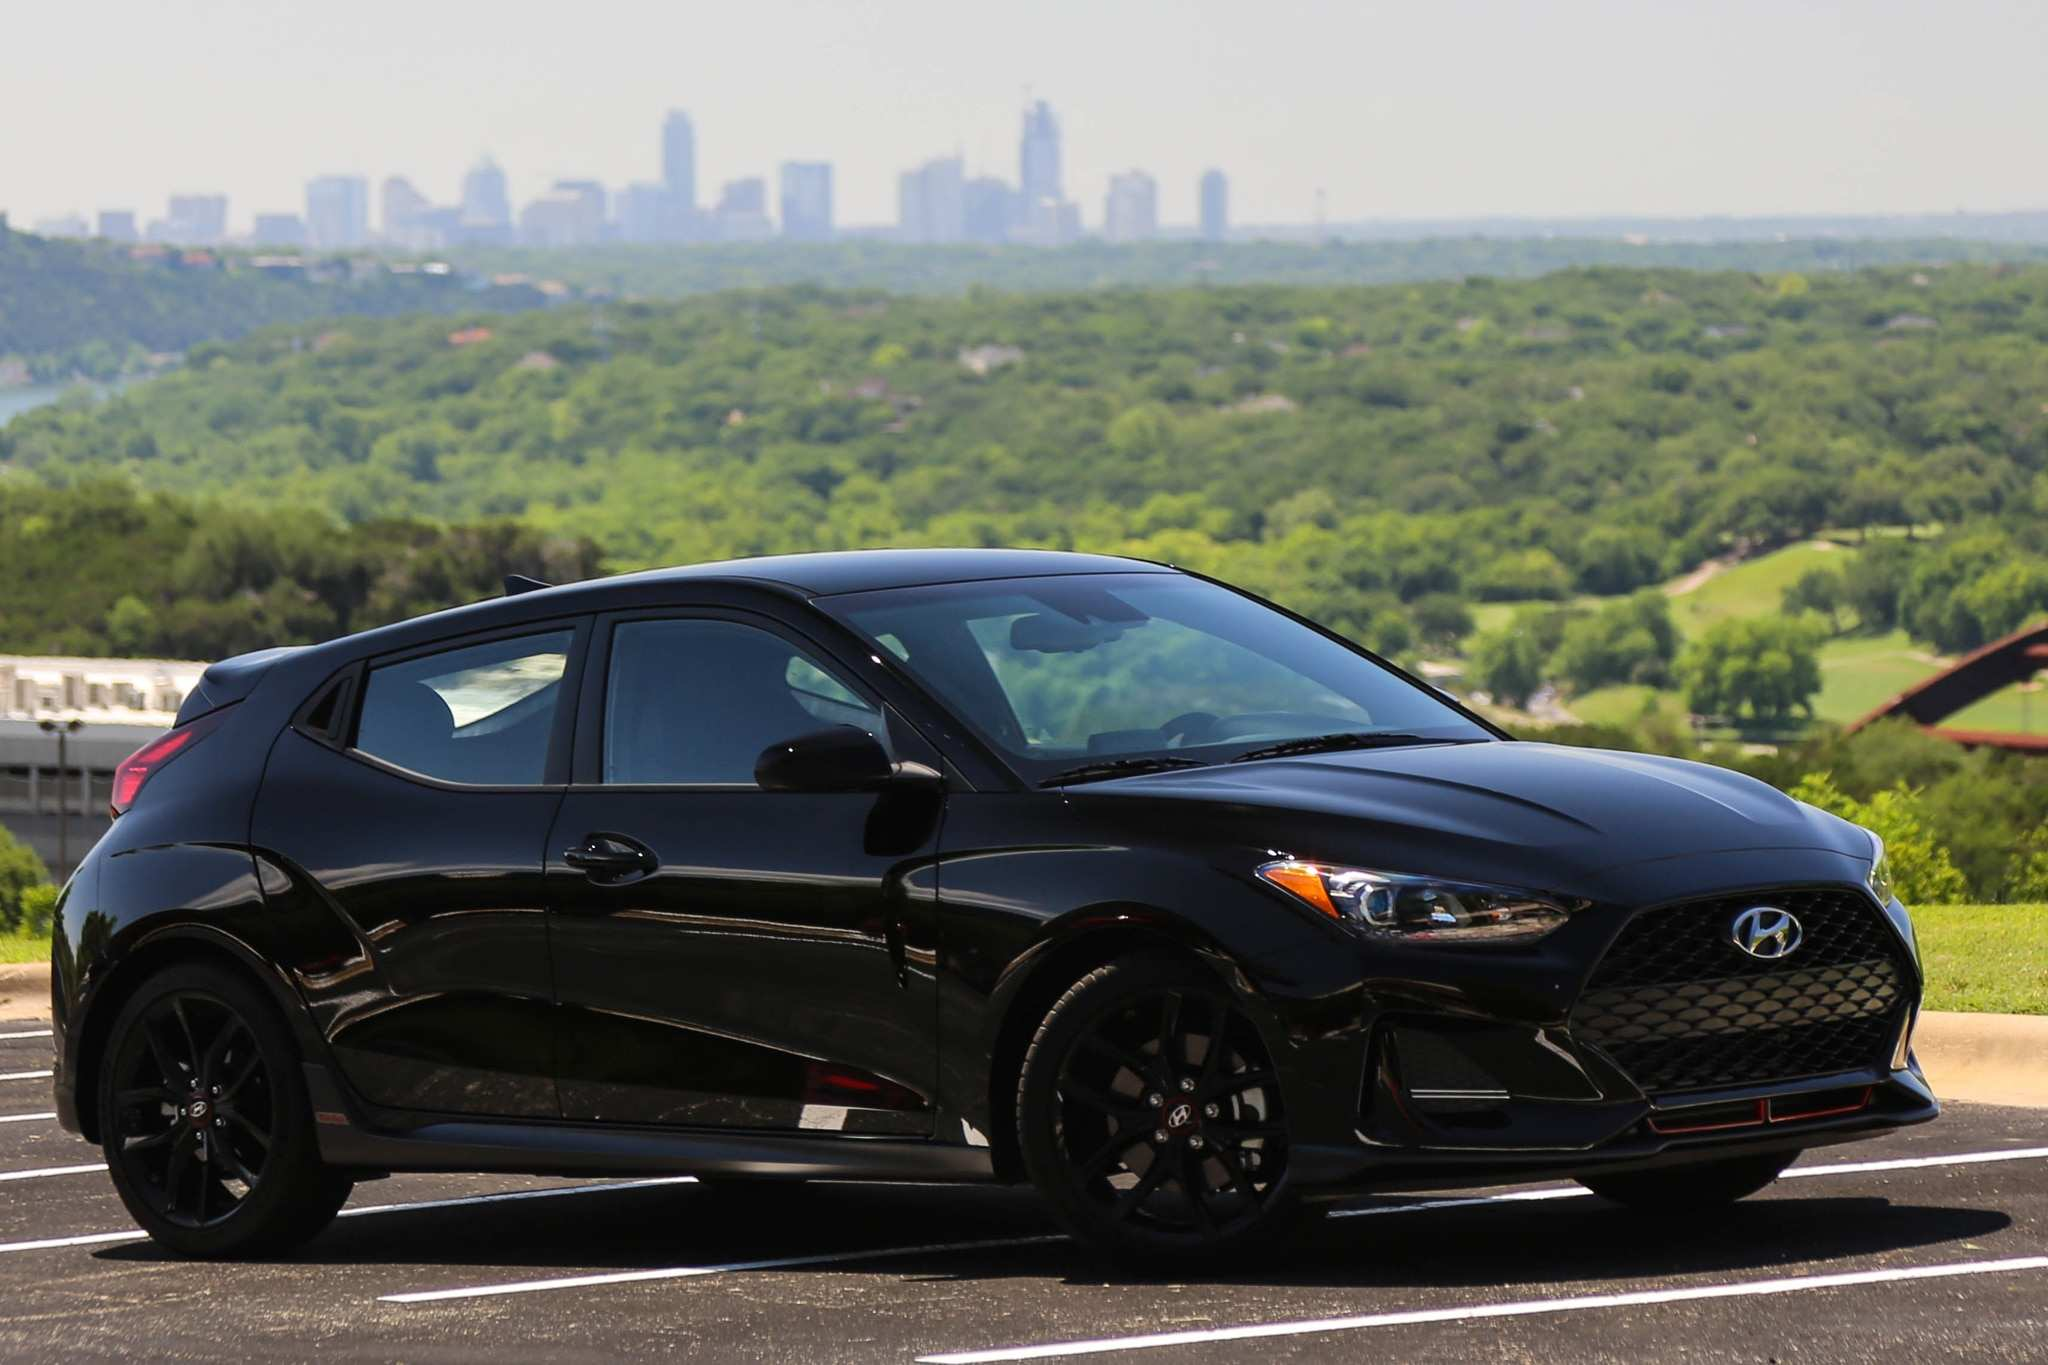 37 All New 2019 Hyundai Veloster Turbo Exterior and Interior with 2019 Hyundai Veloster Turbo